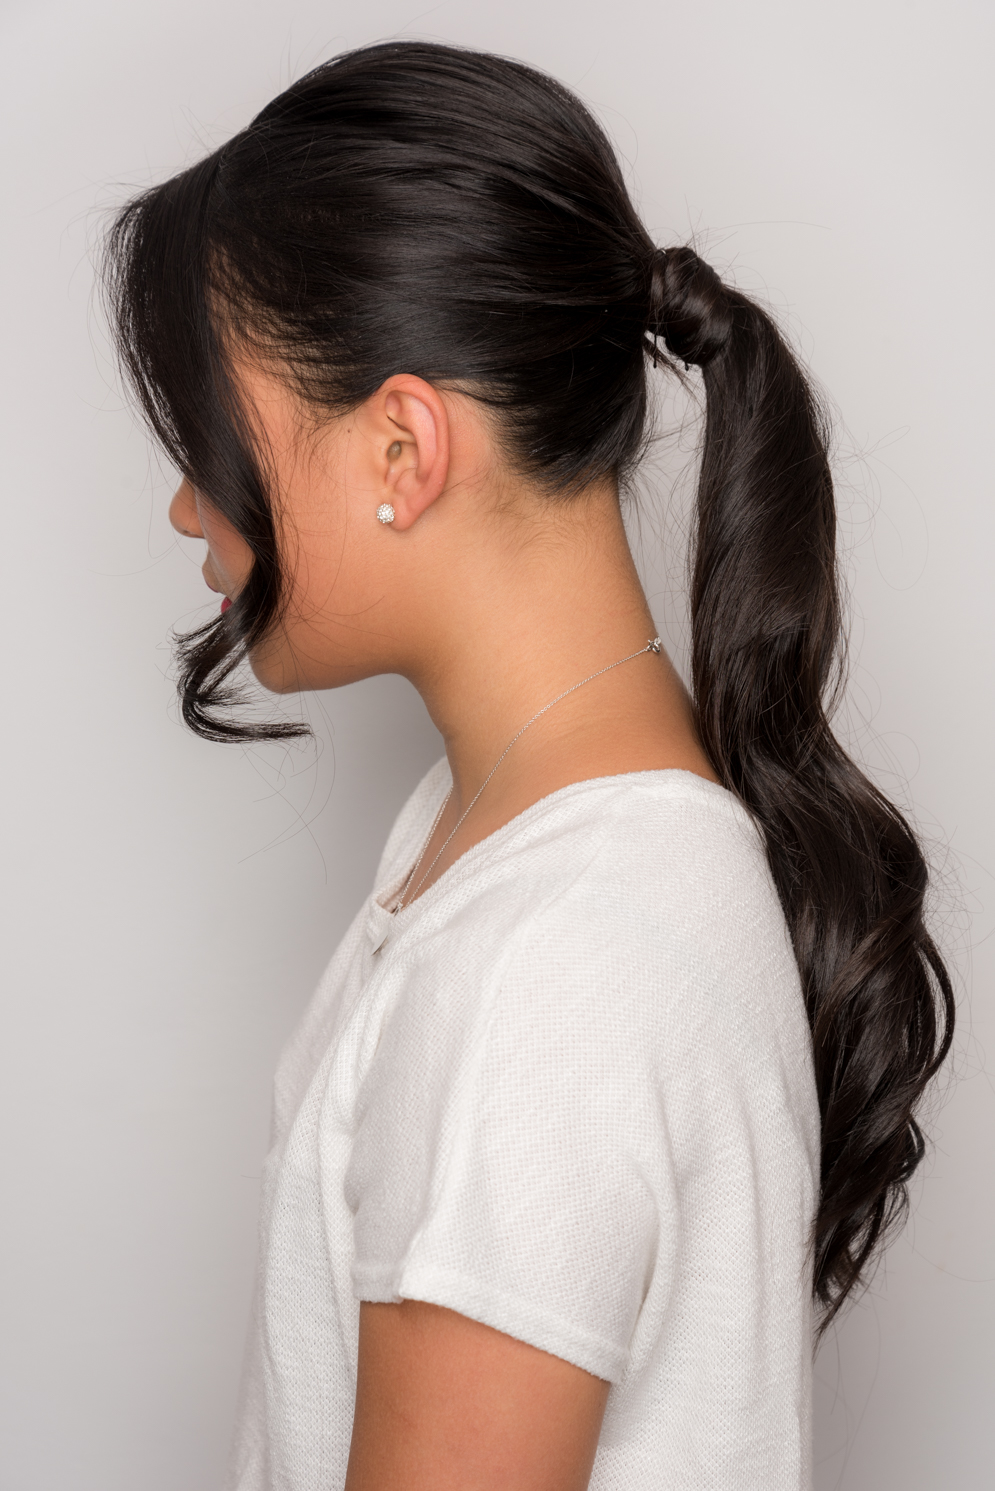 How To Make Easy & Stylish Ponytail 10